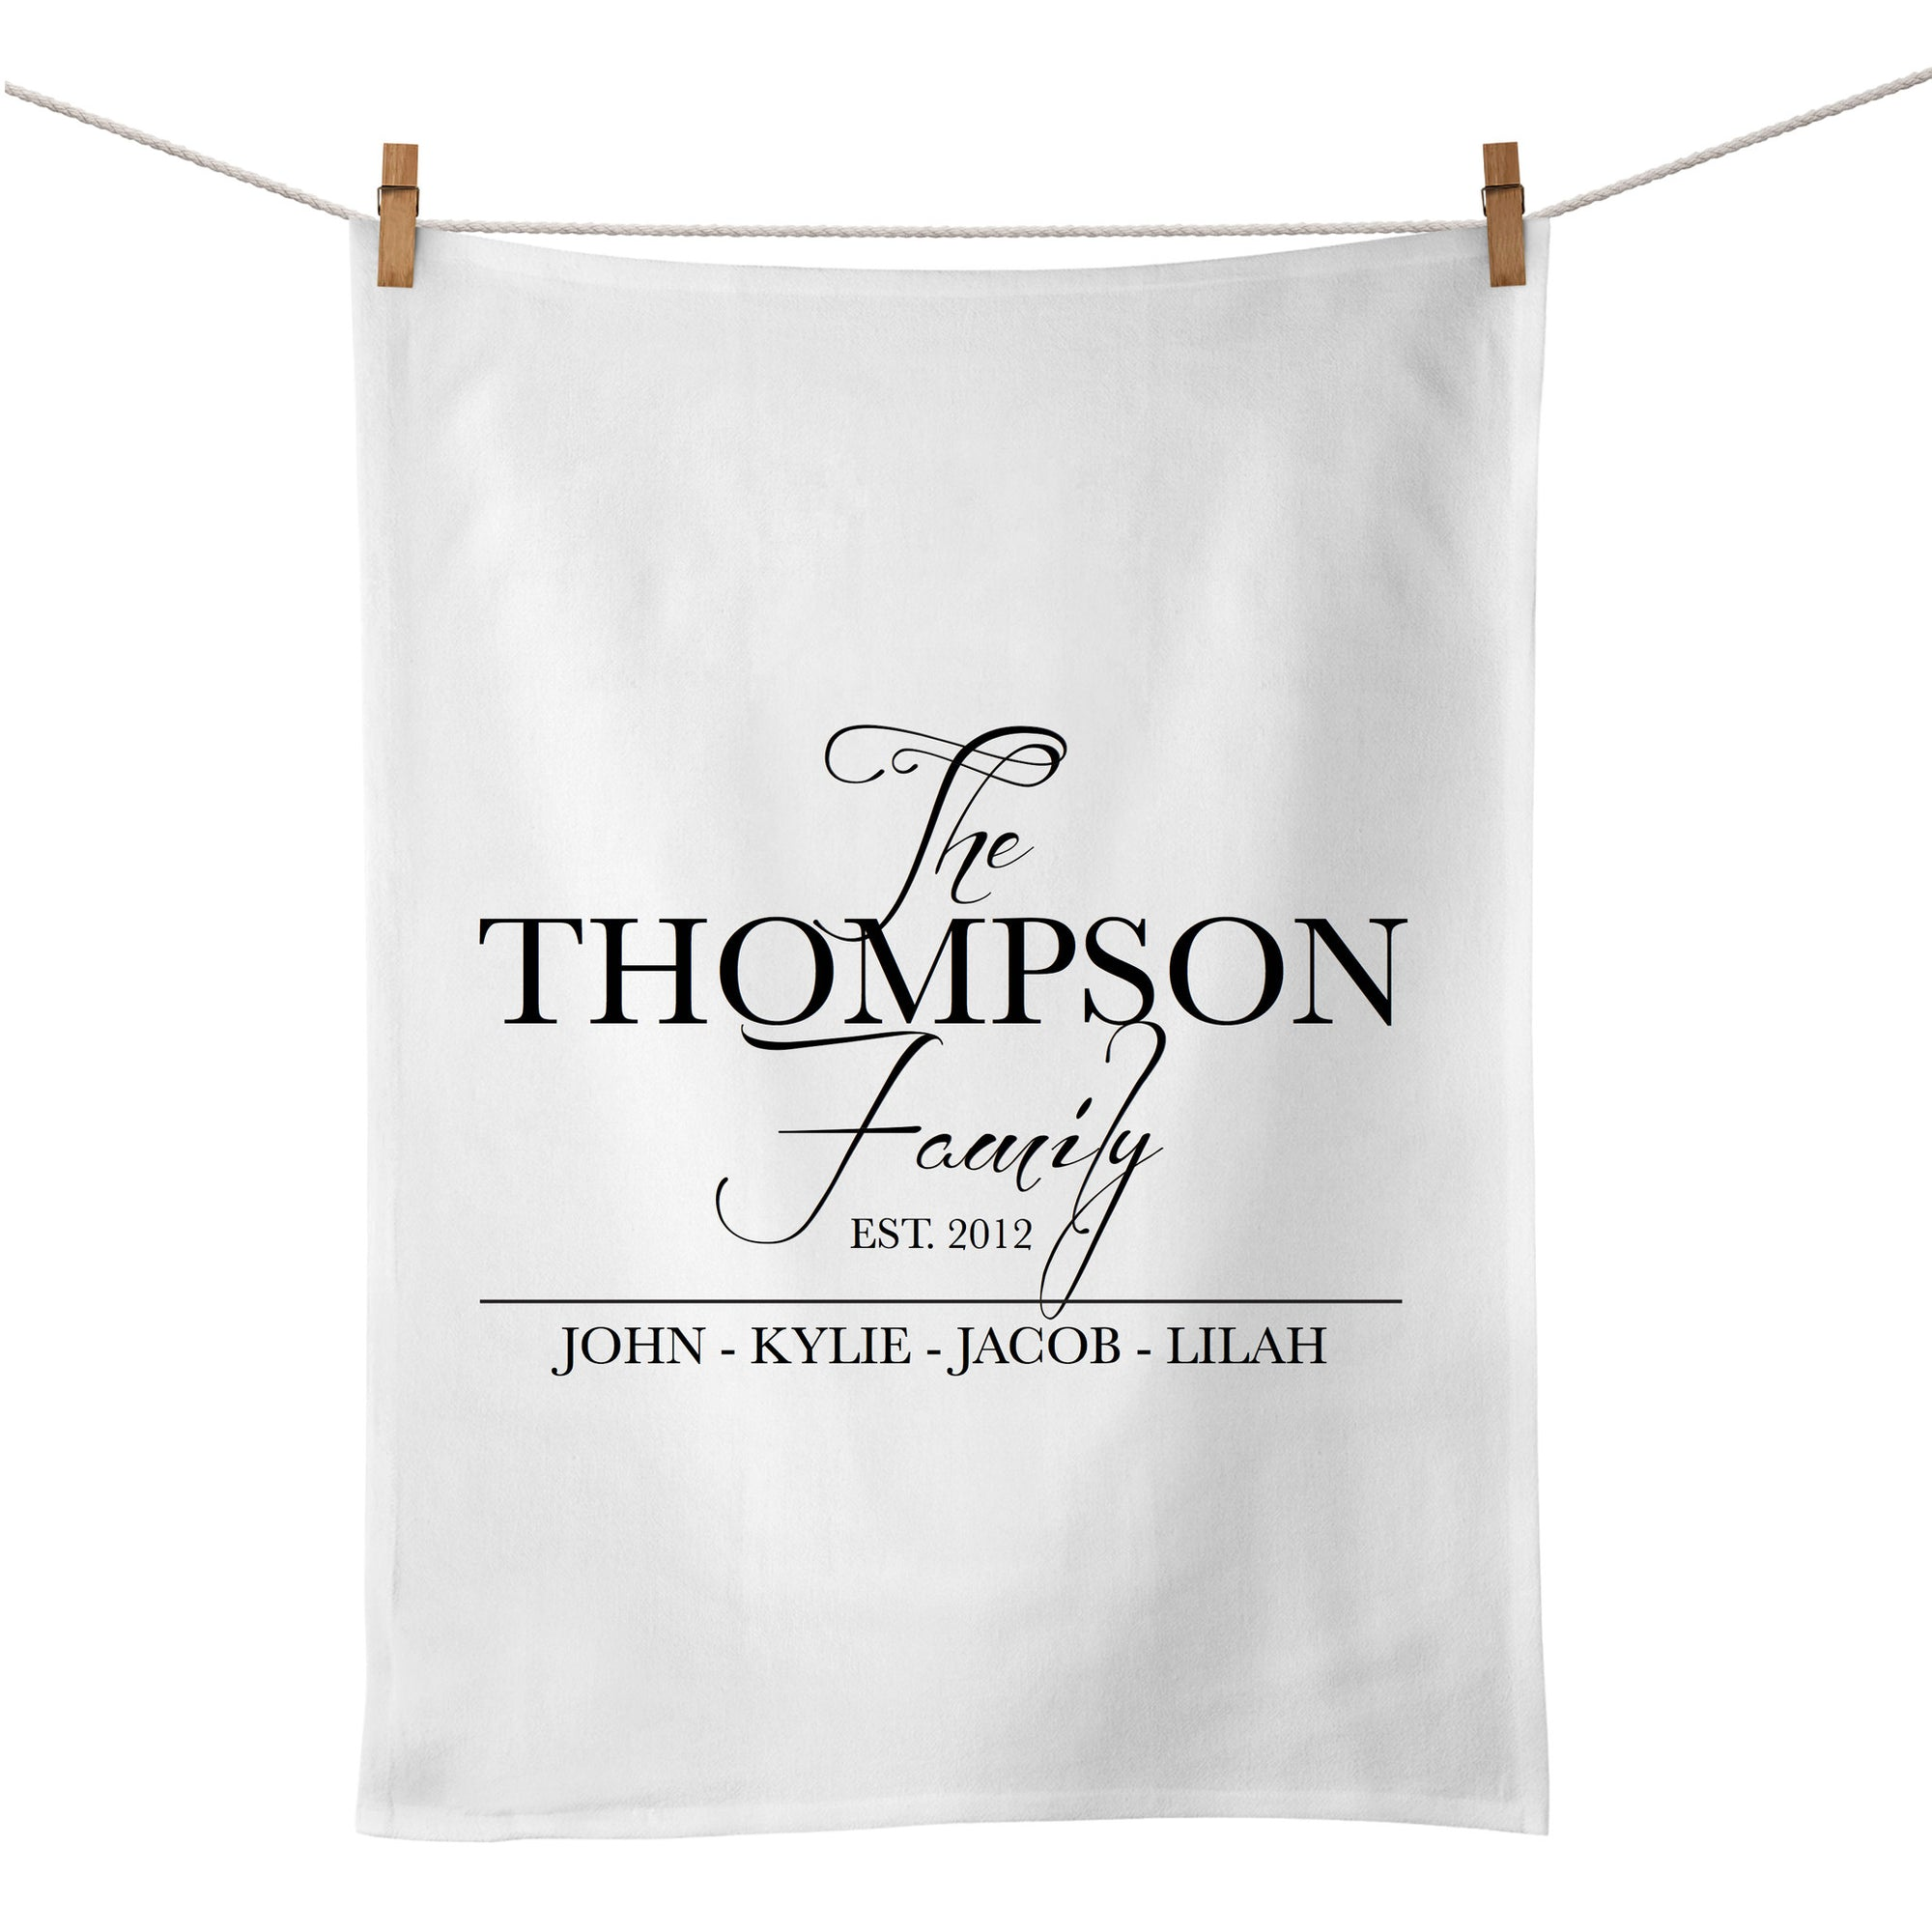 The Family Tea Towel